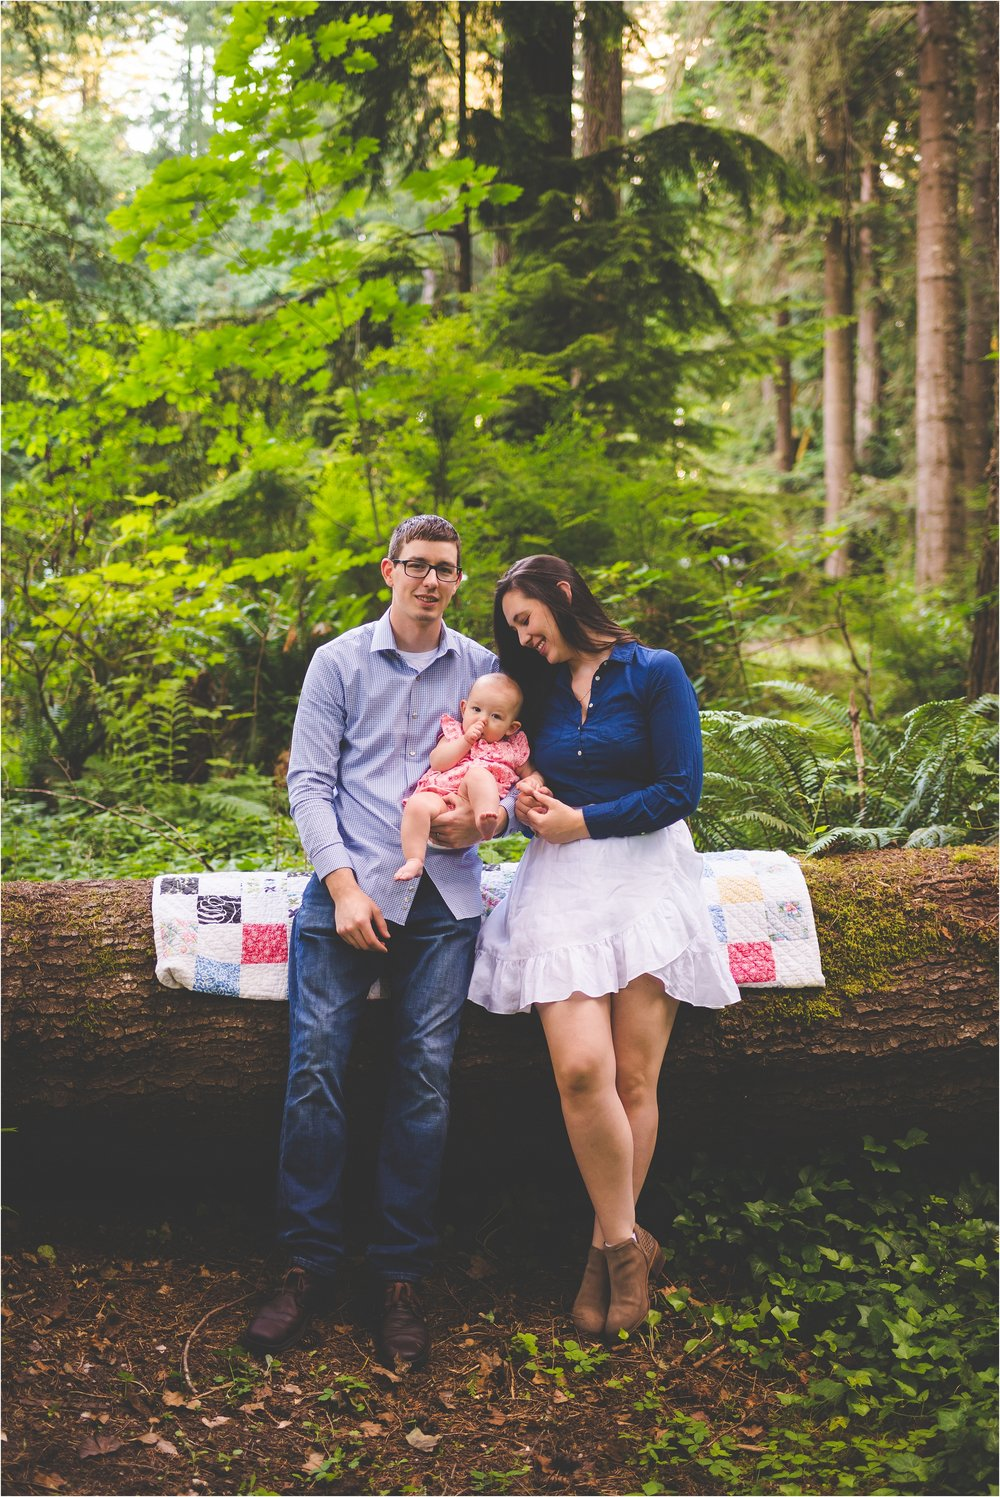 priest-point-park-olympia-wa-family-session-jannicka-mayte-anchorage-alaska-seattle-washington-family-photographer_0017.jpg